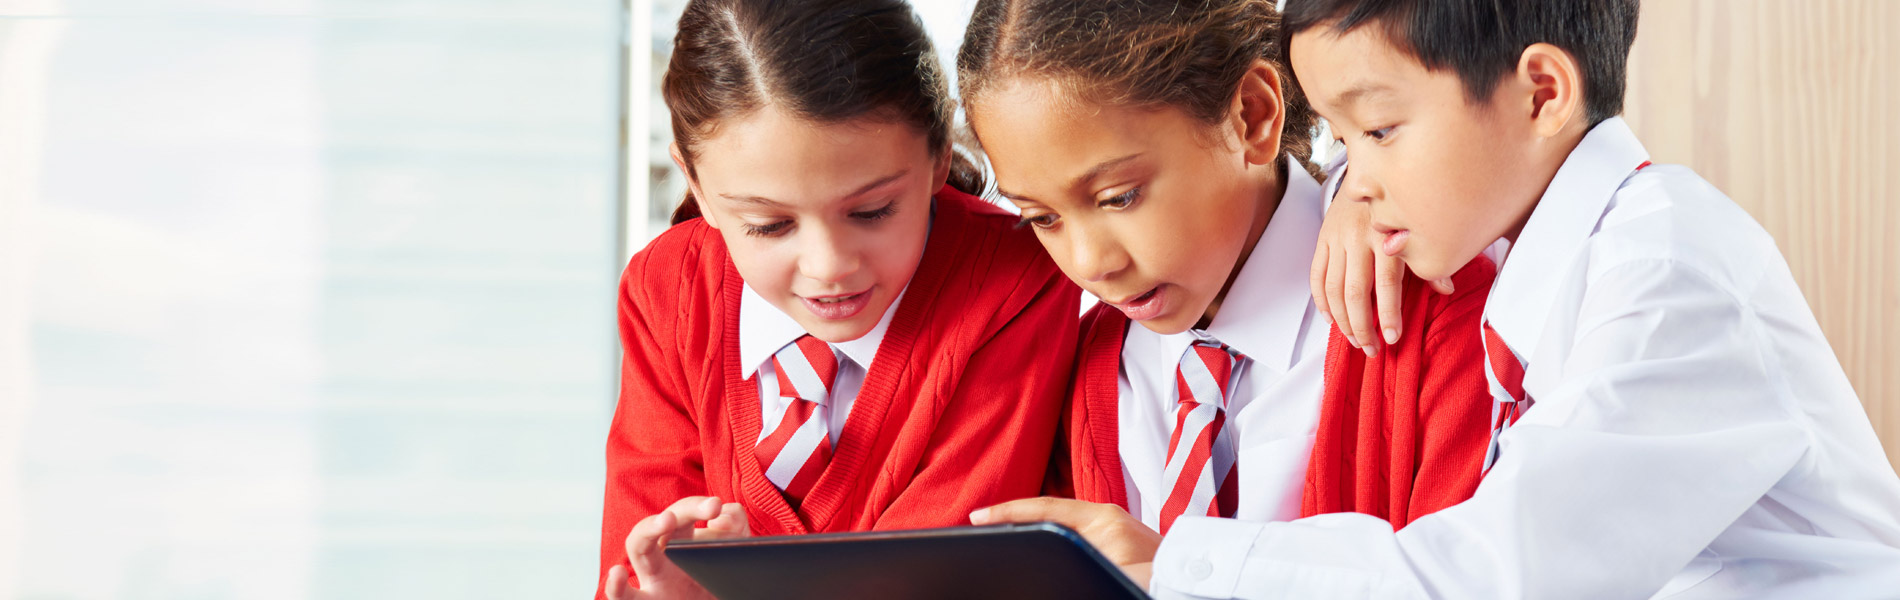 Image of three children using a Windows tablet in school